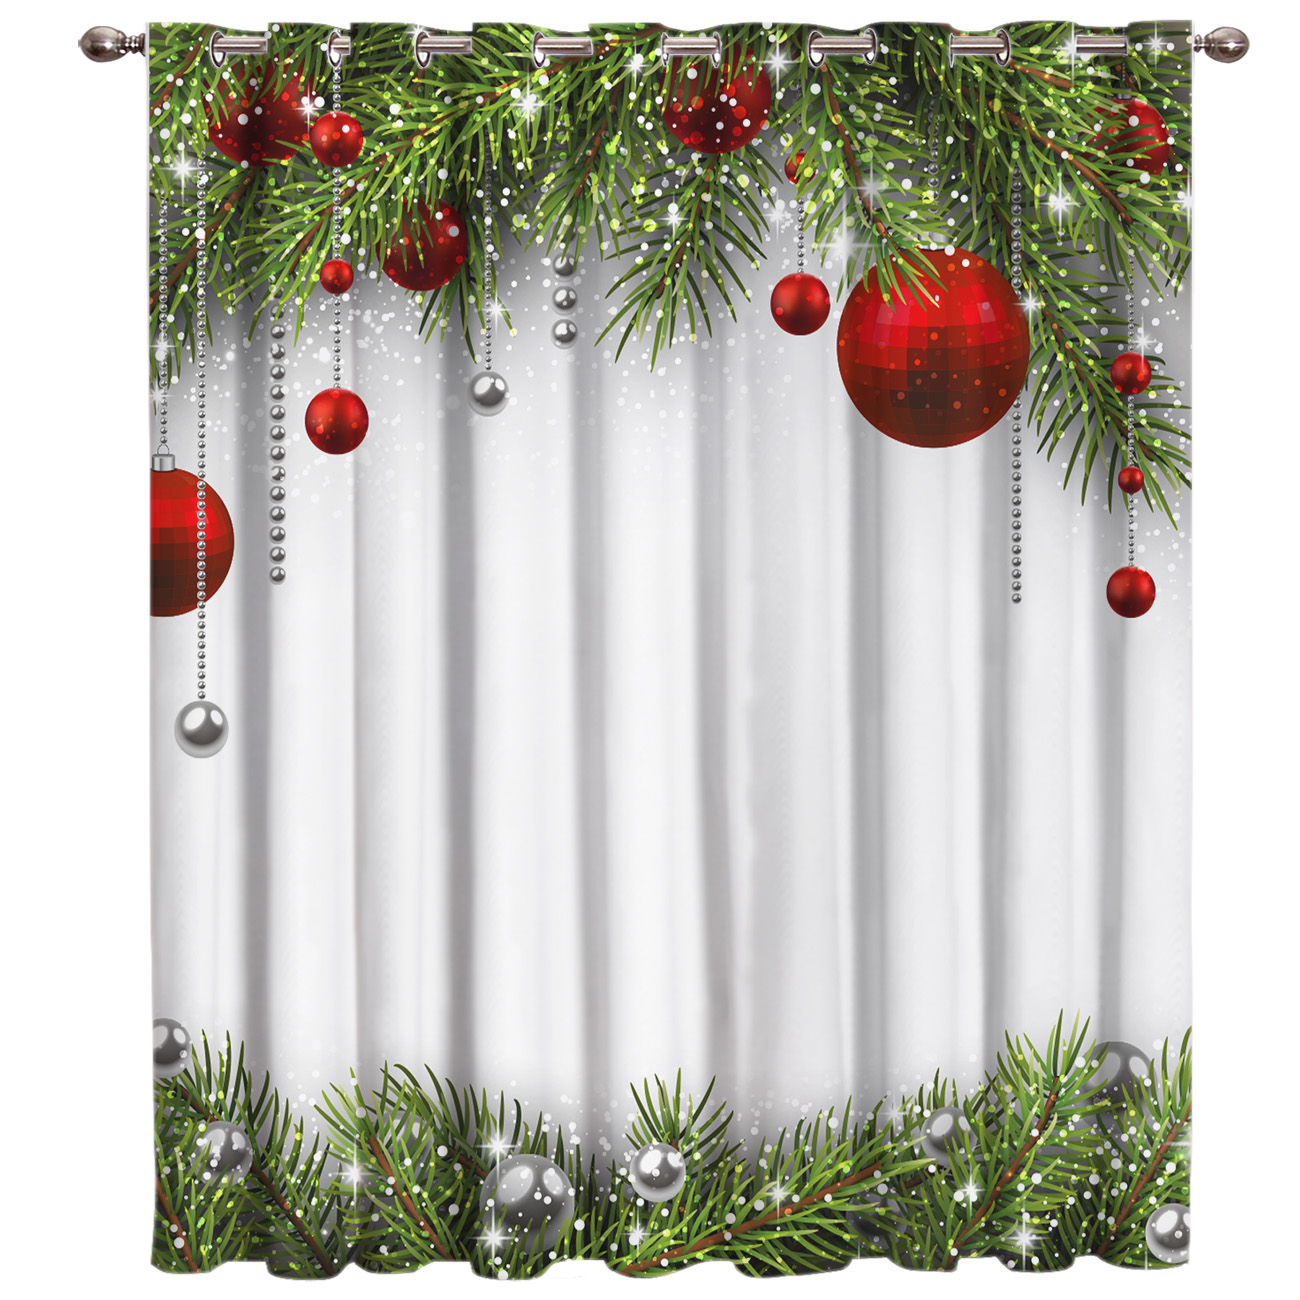 Curtains Treatment-Ideas Window Living-Room Christmas Winter Indoor-Fabric Snowing Large